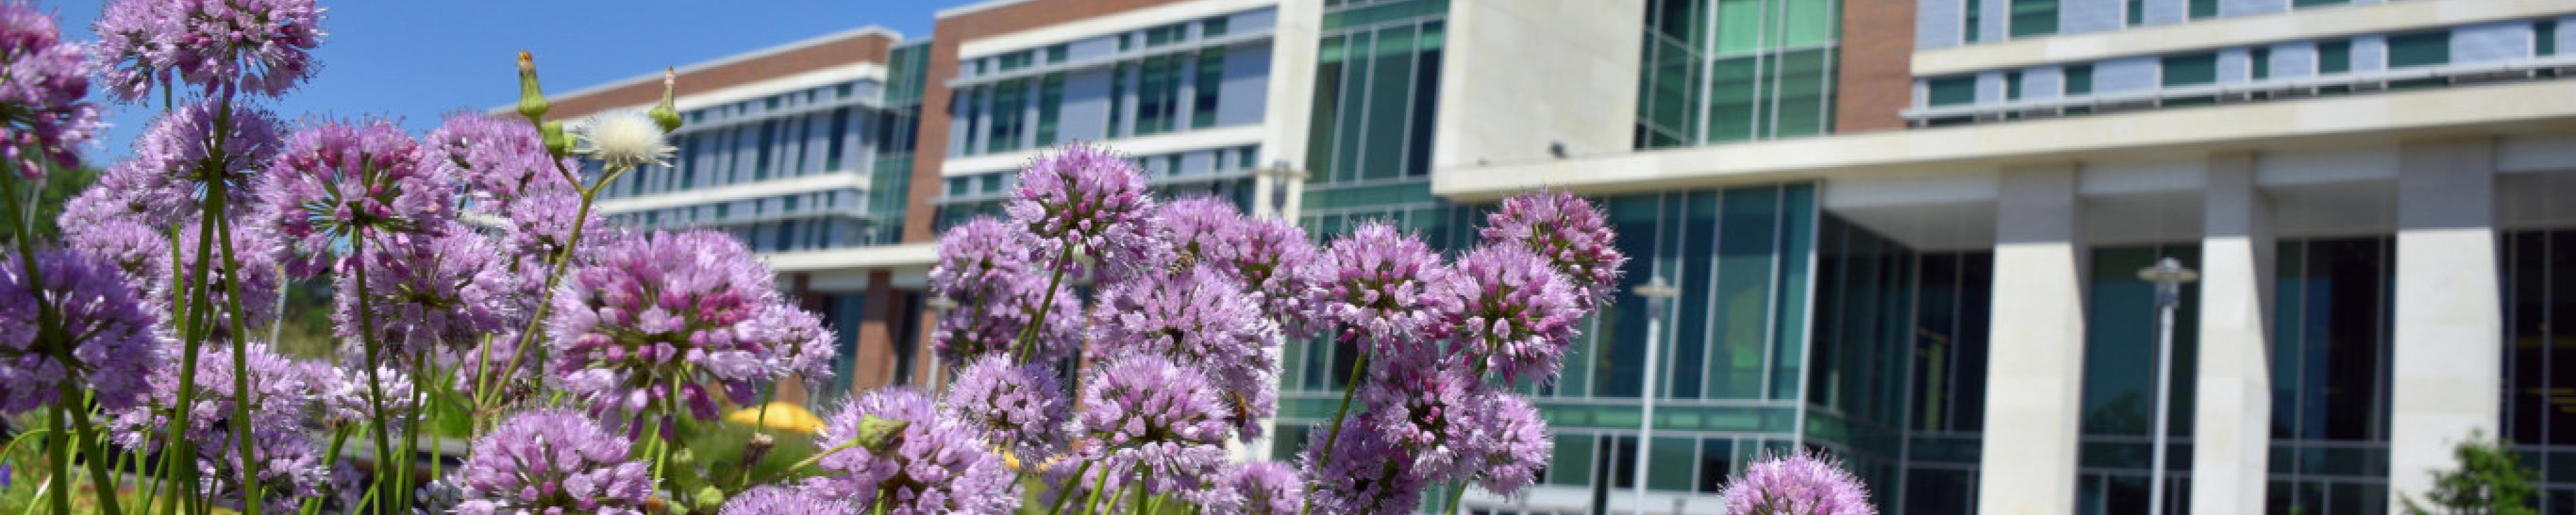 This image displays close-up clusters of purple flowers in front of Sangren Hall on the campus of Western Michigan University.